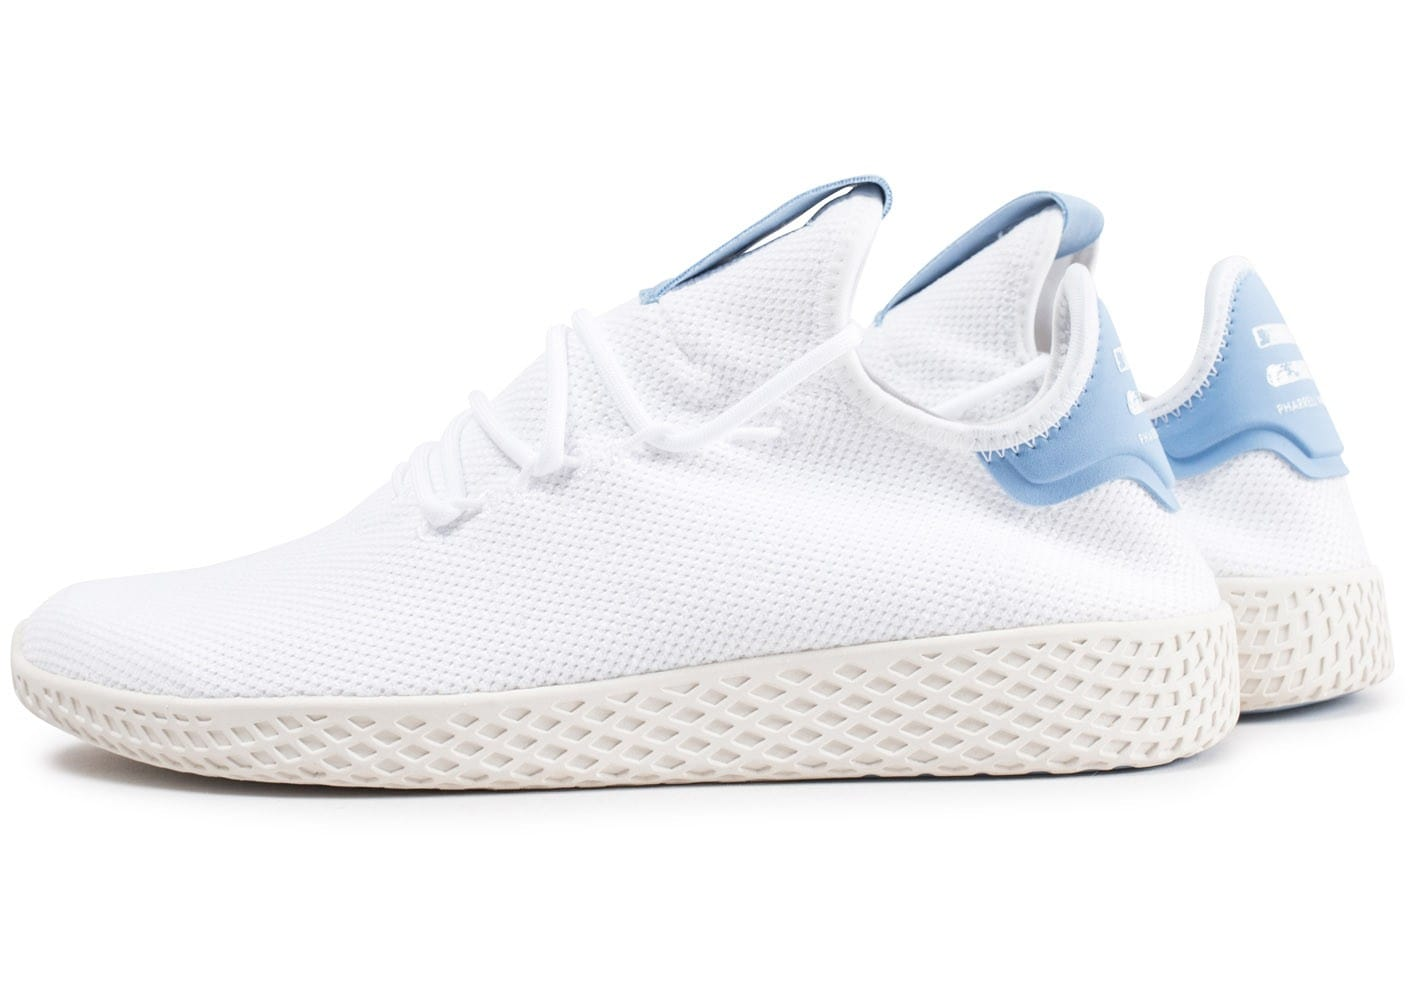 Chaussures Pharrell Williams Adidas Originals blanches Fashion homme NYSnt5BpiM